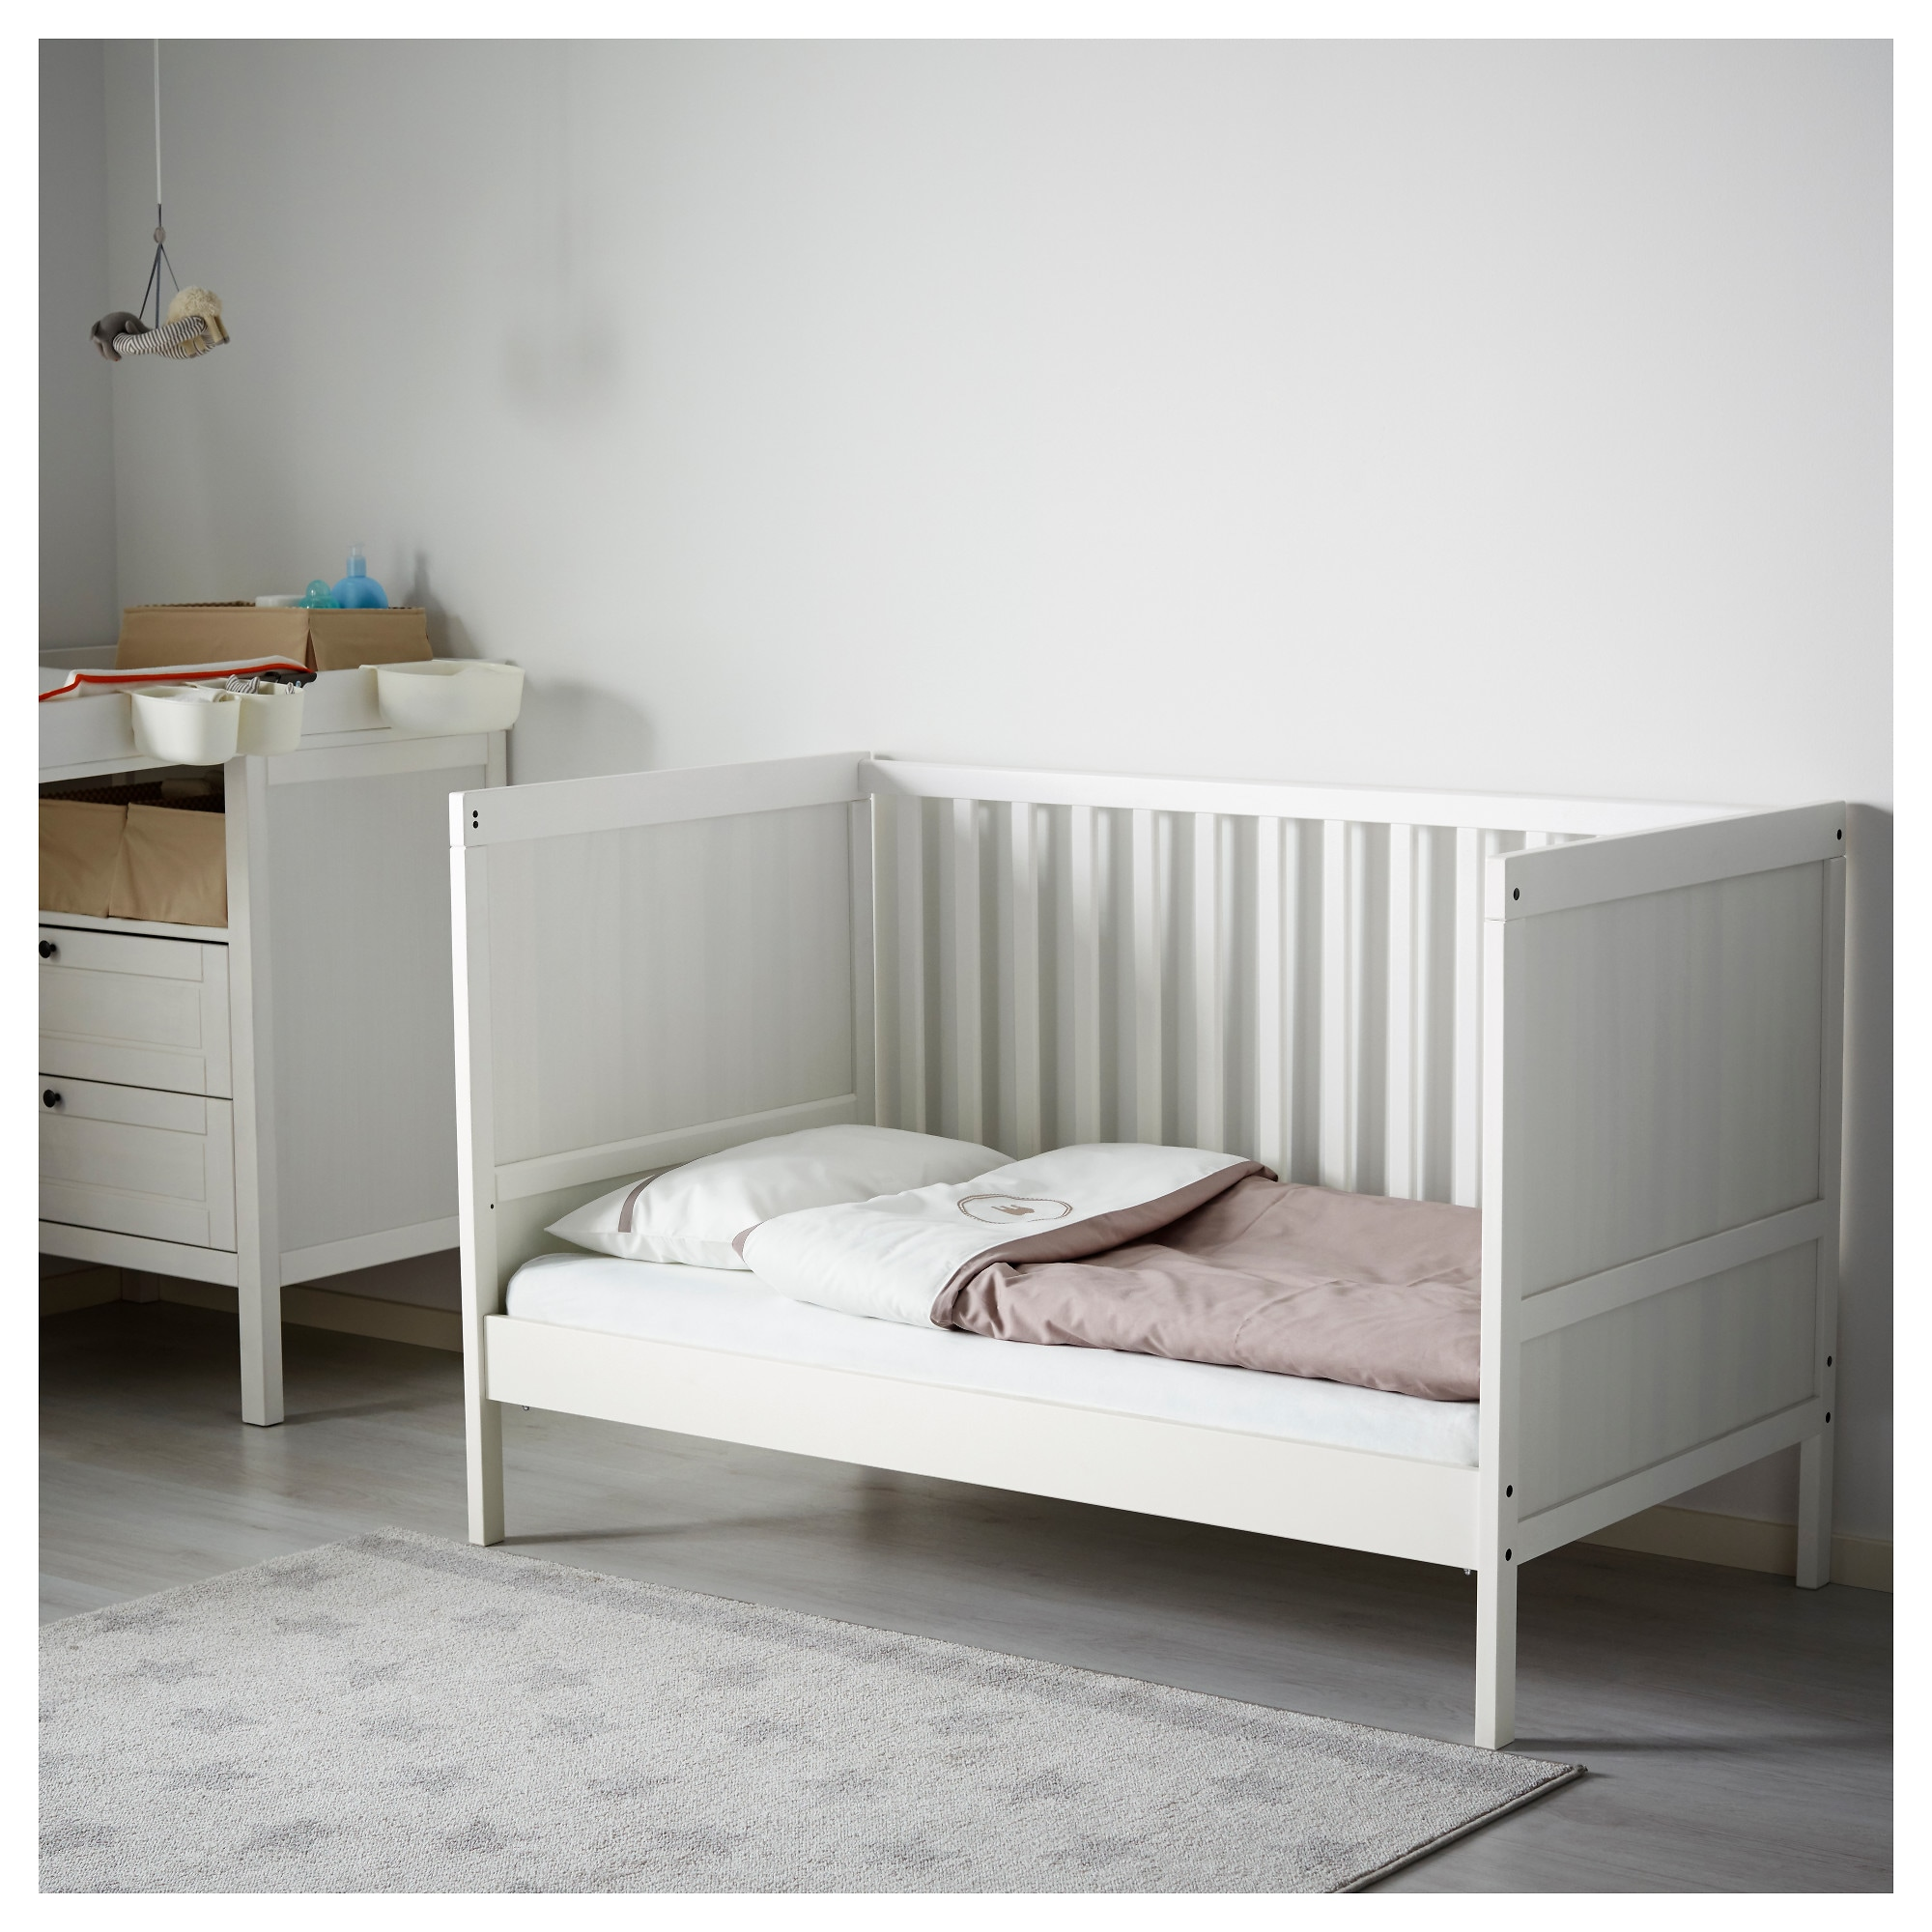 lit vikare ikea excellent ikea sundvik toddler bed cribs. Black Bedroom Furniture Sets. Home Design Ideas